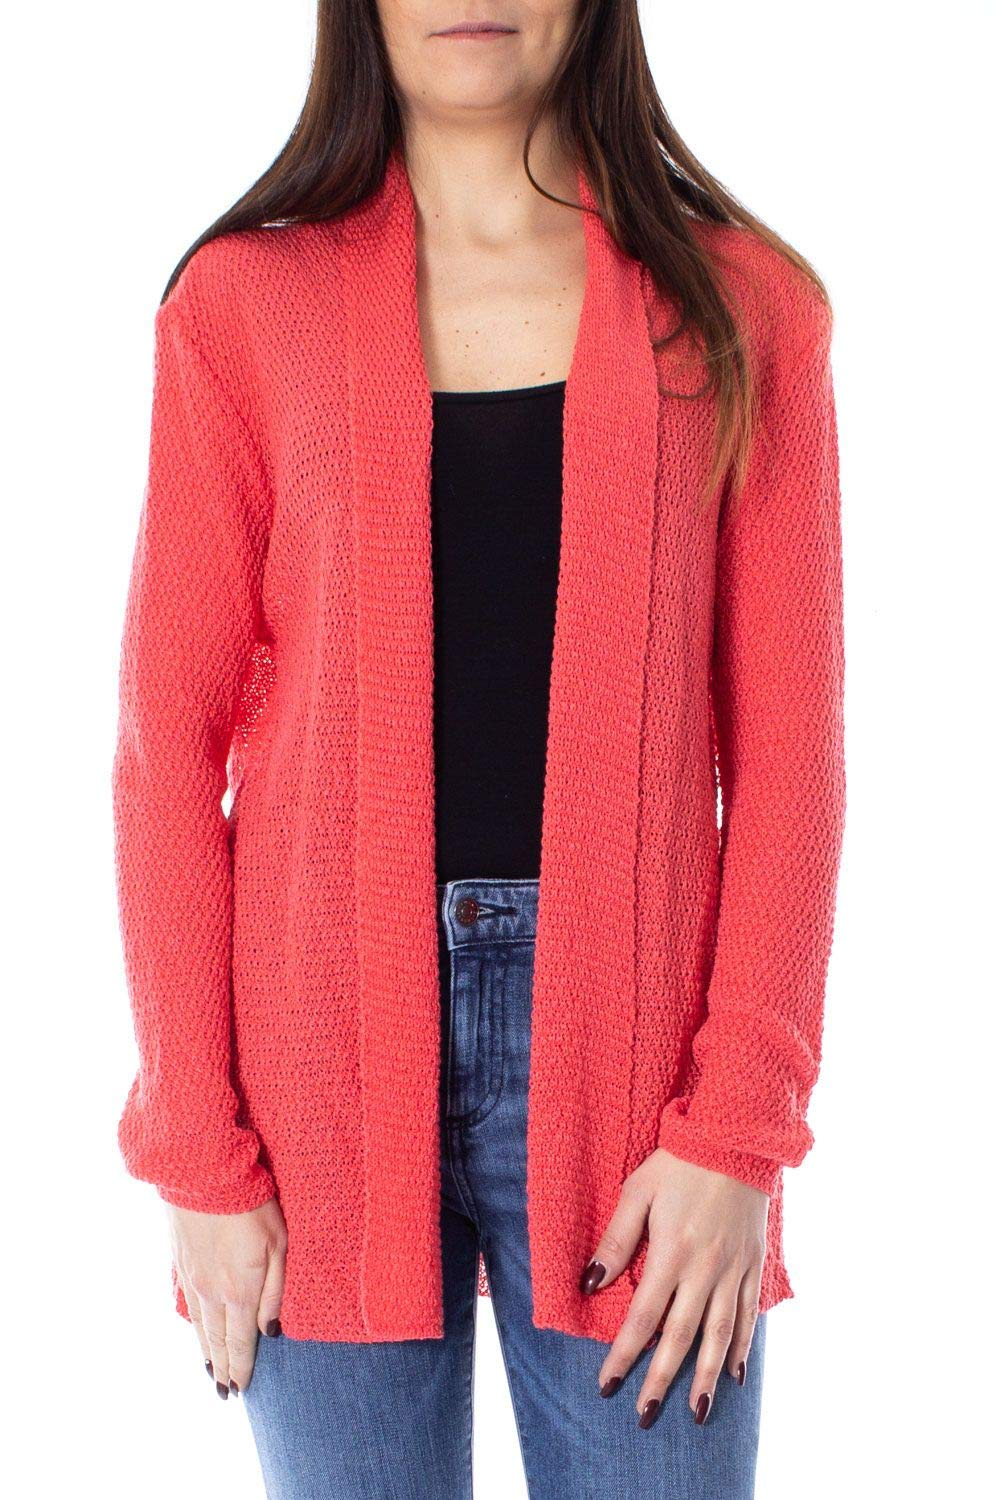 One.0 Women's OZ17RED Red Acrylic Cardigan